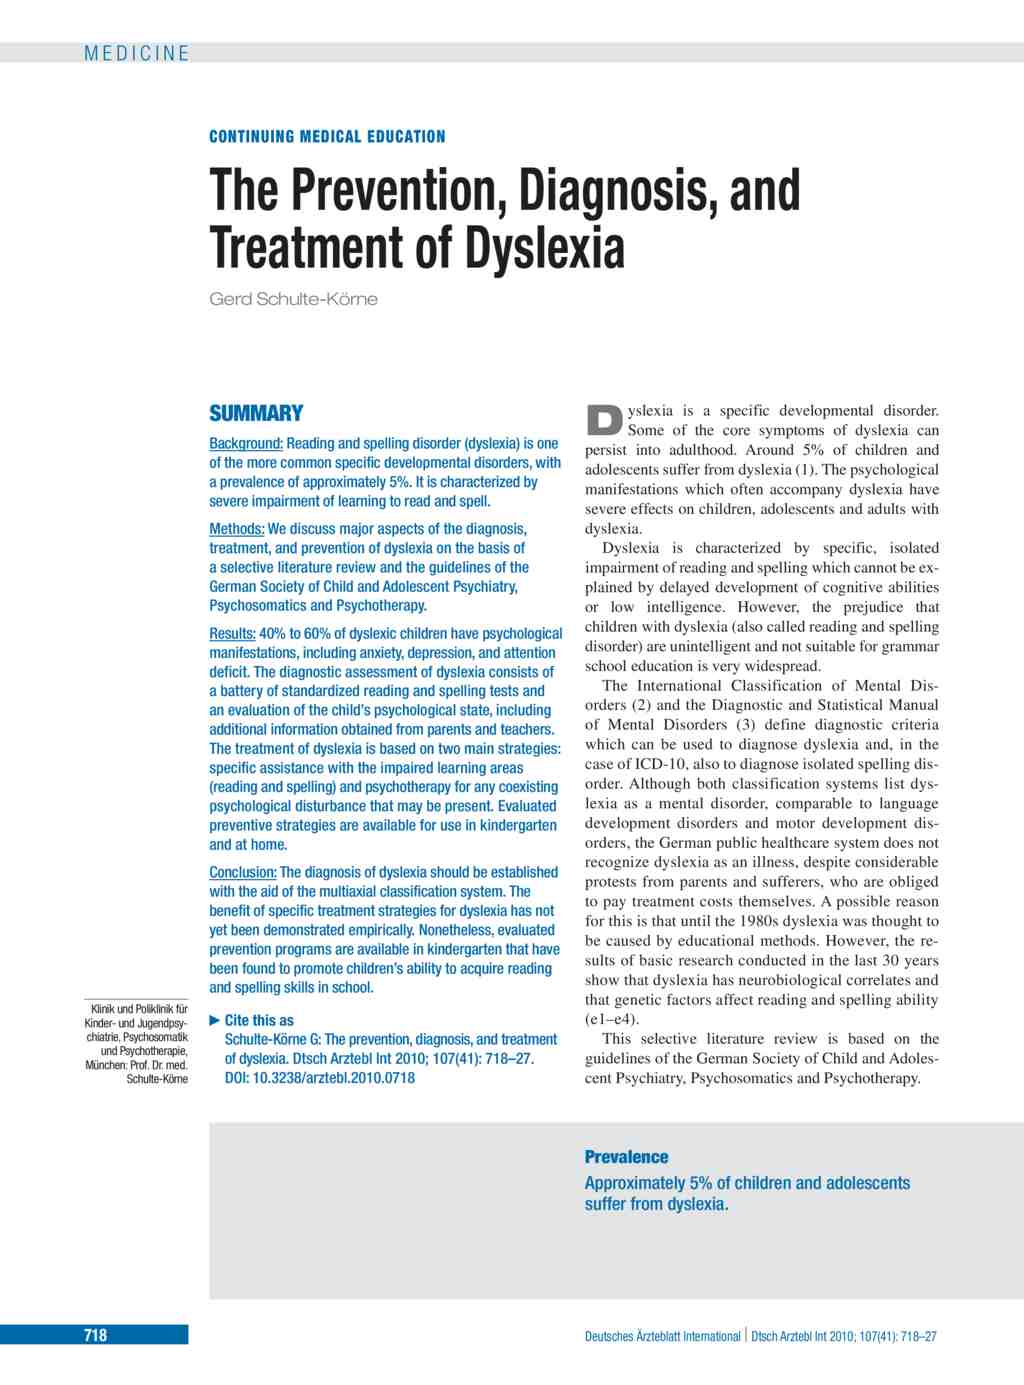 The Prevention, Diagnosis, and Treatment of Dyslexia (15 10 2010)